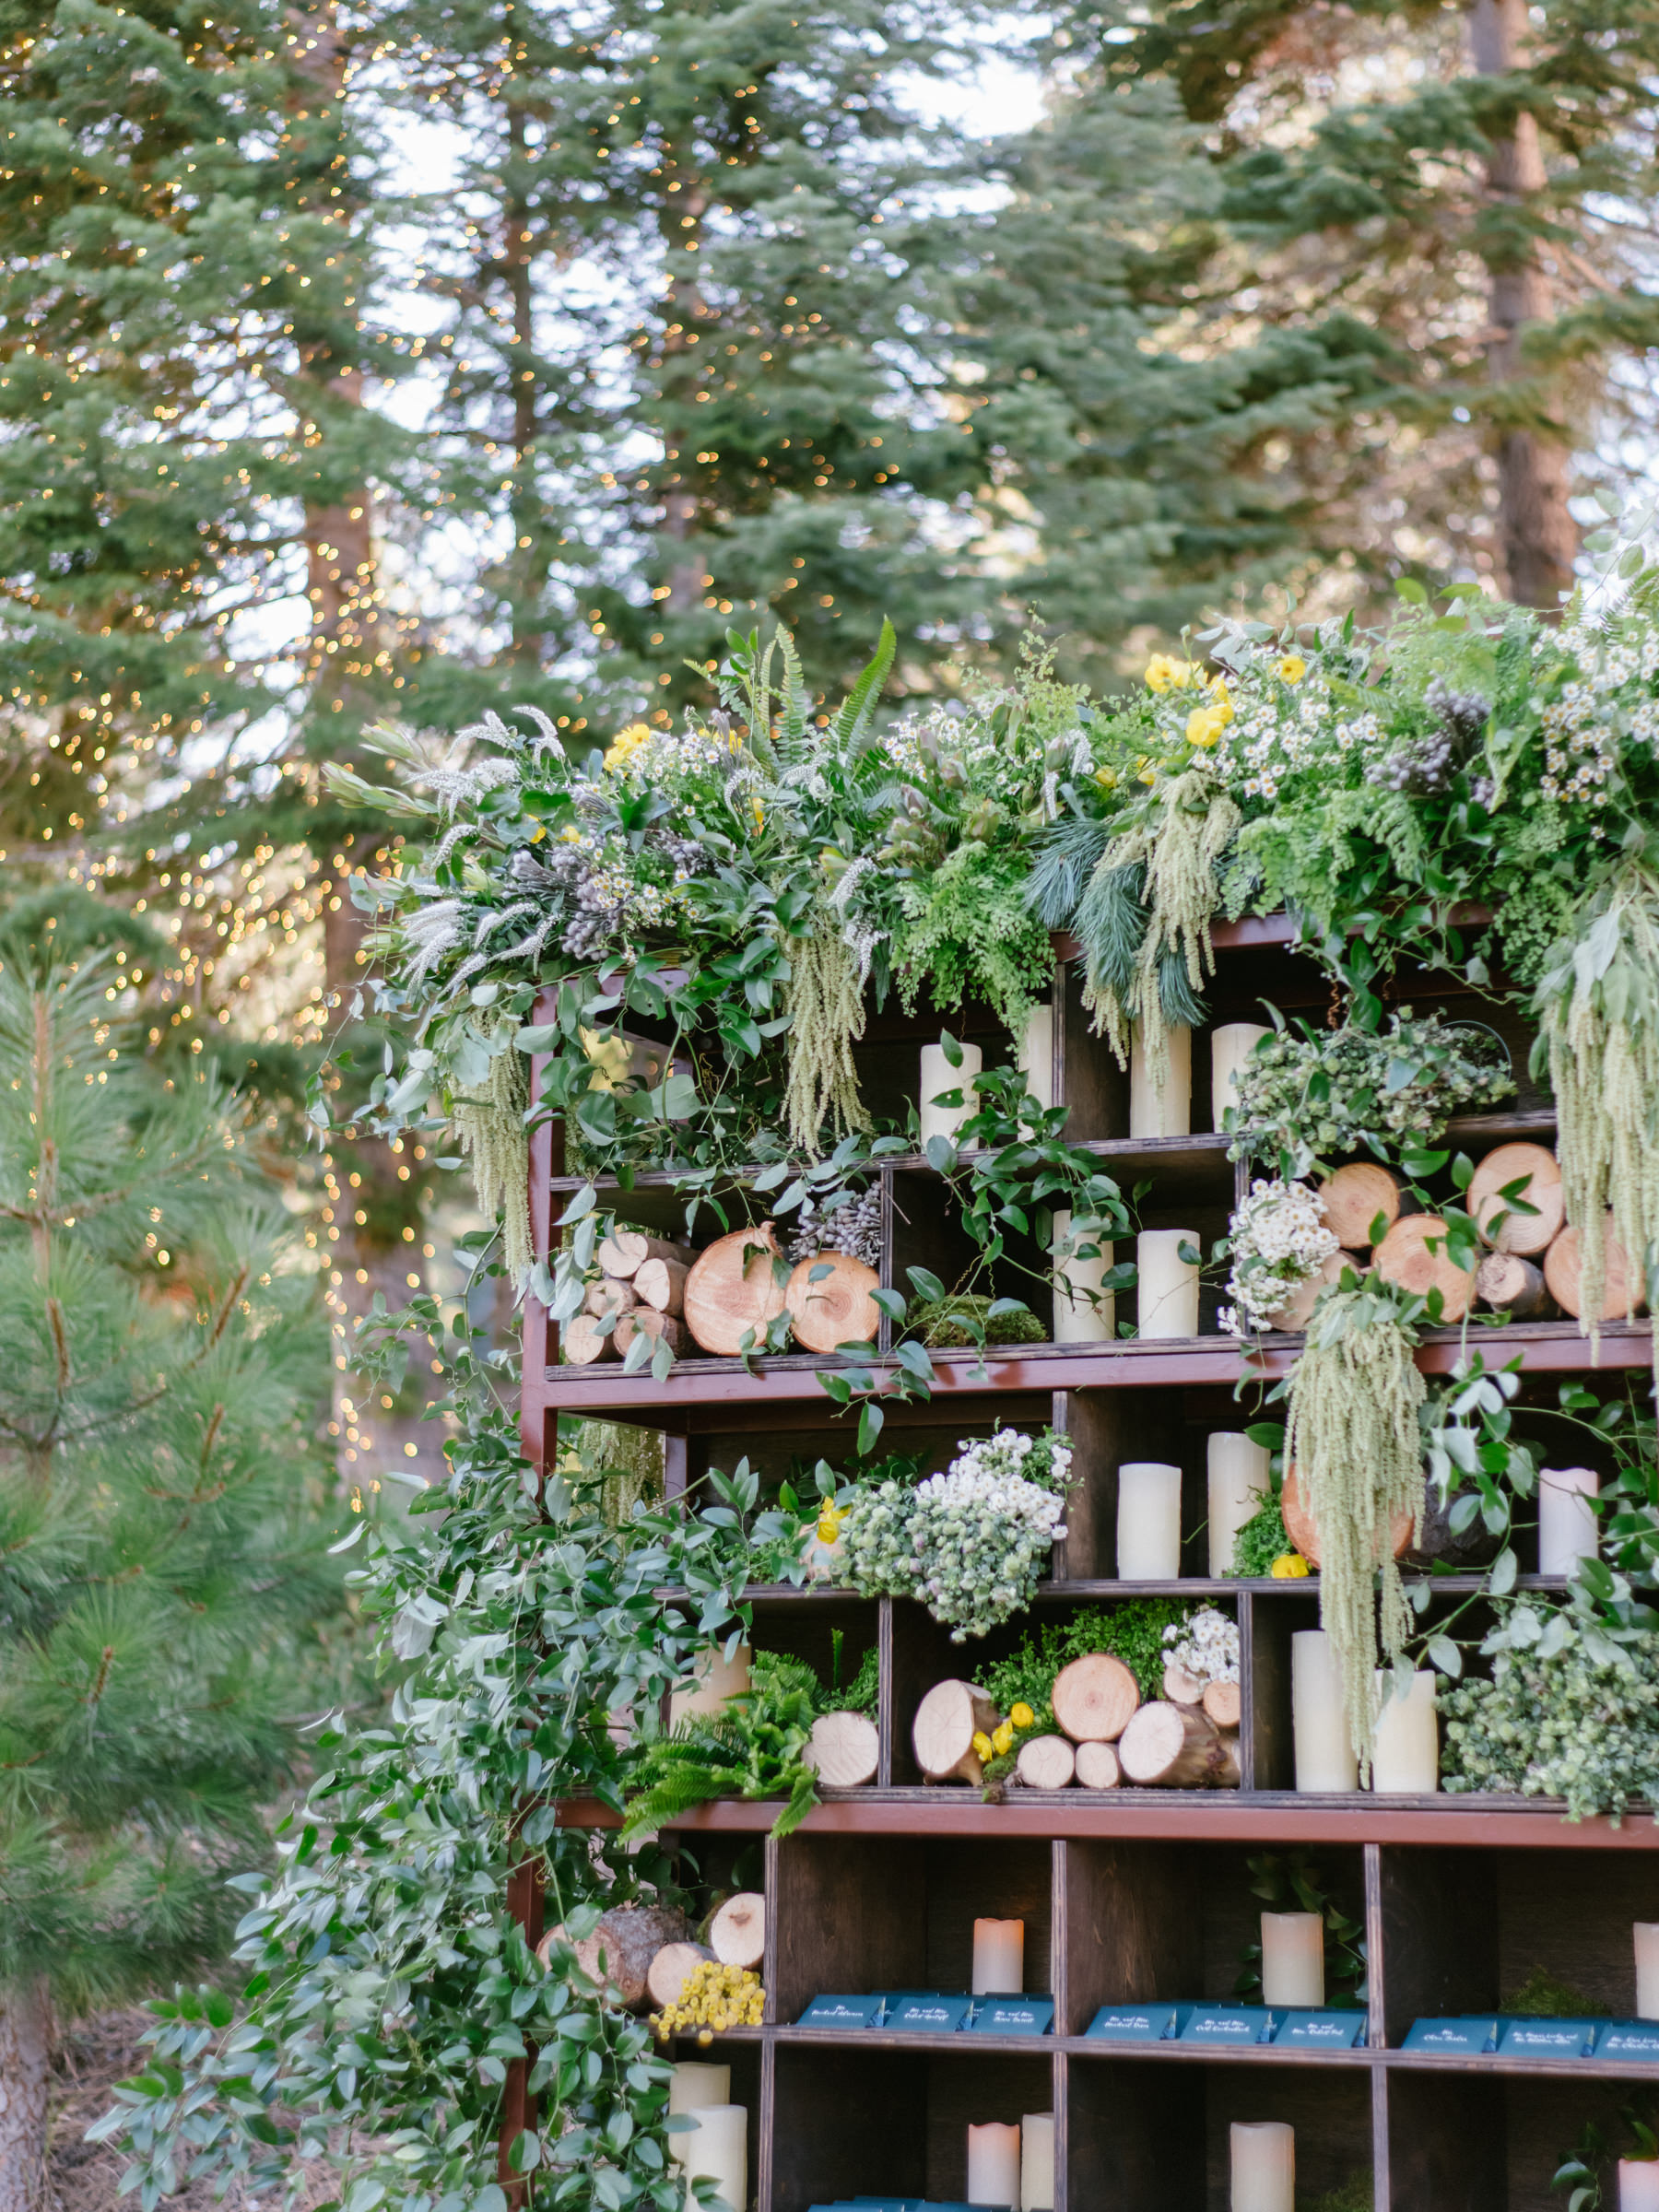 Decorative Shelves with logs and greenery for outdoor weddings  - photo by Amy and Stuart Photography